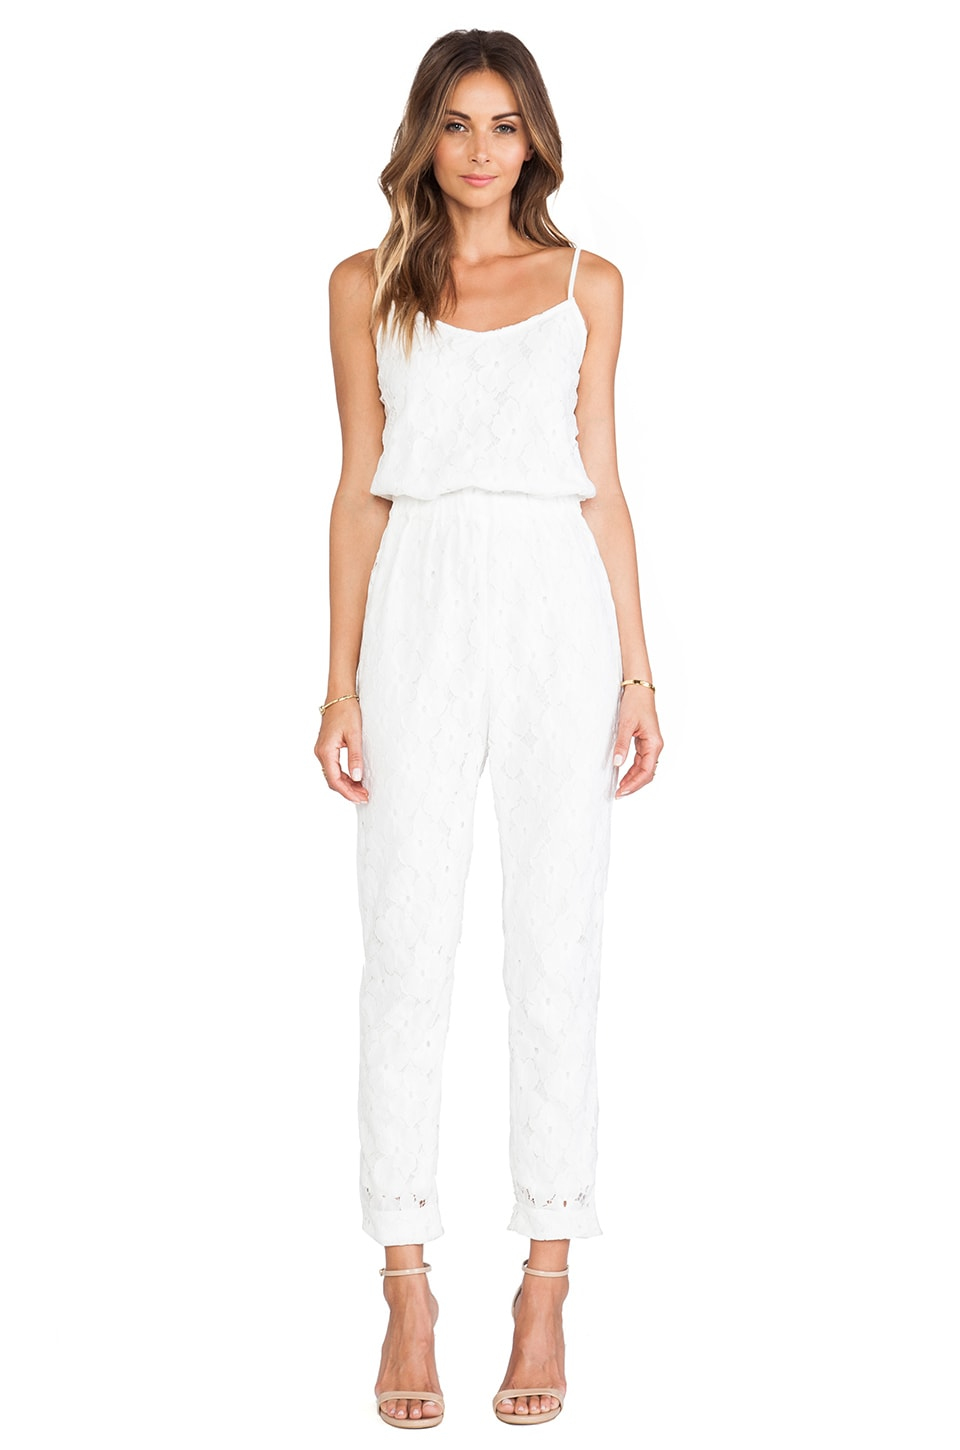 J.O.A. Lace Jumpsuit in Off White | REVOLVE